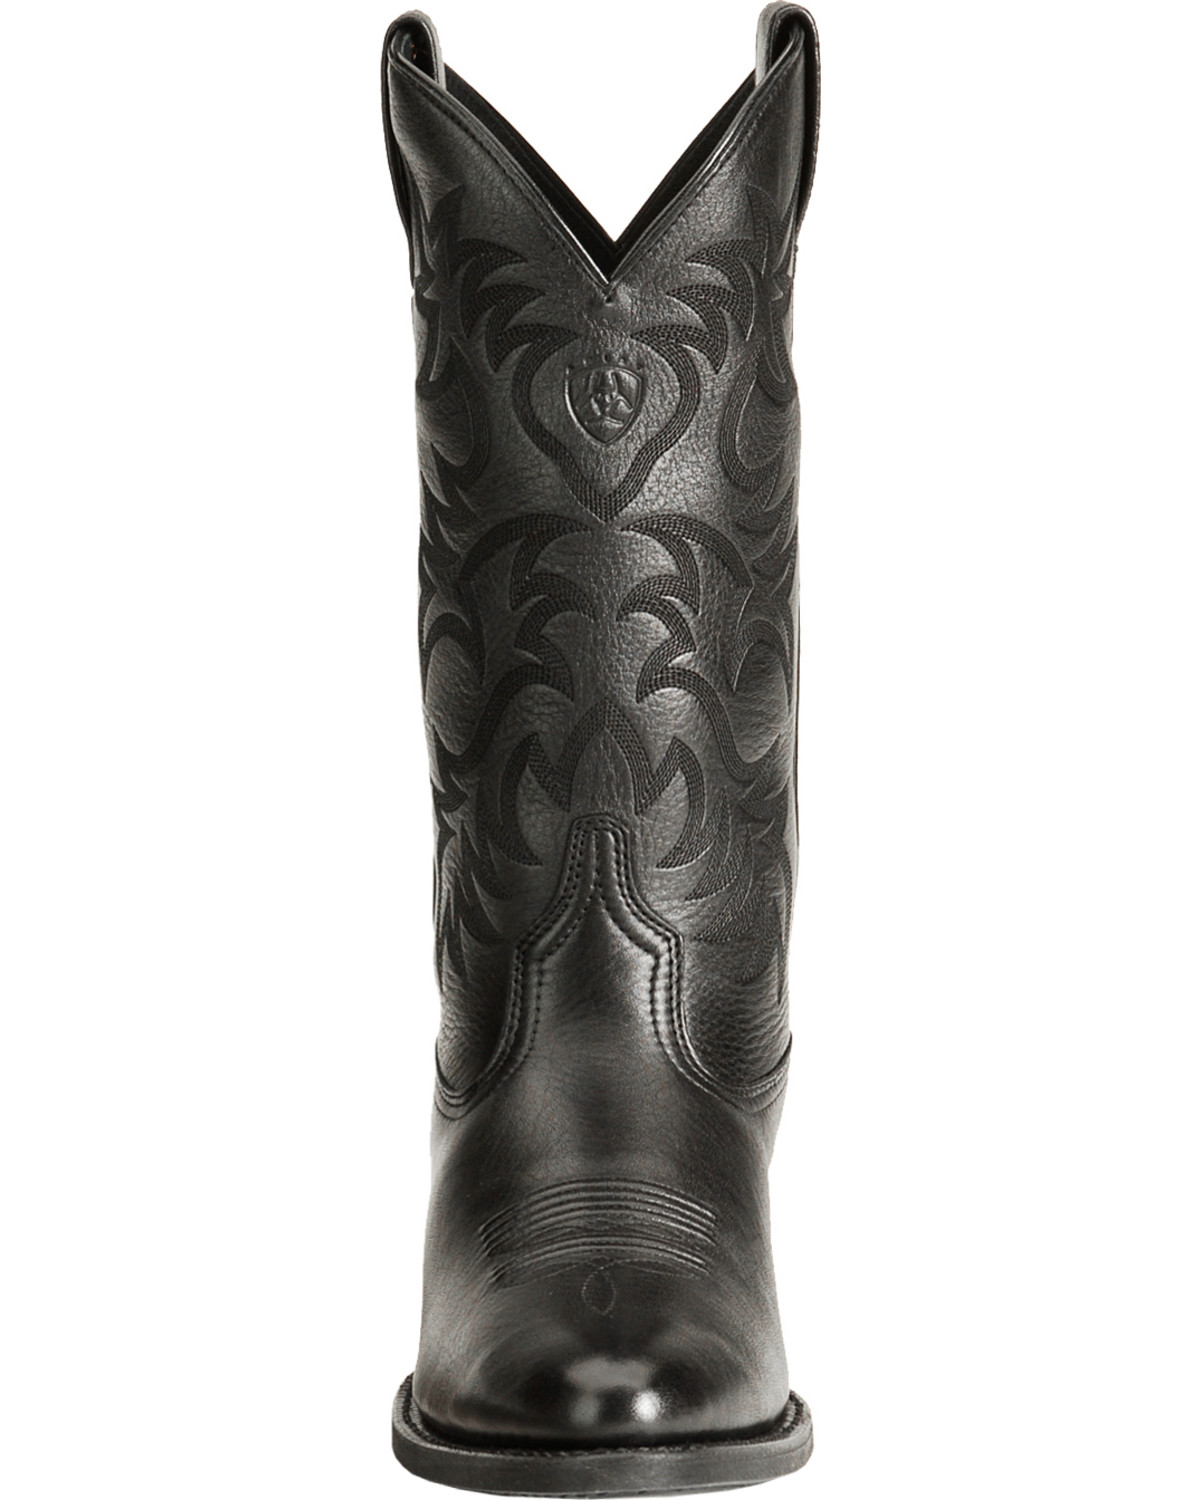 Ariat Heritage Deertan Cowboy Boots - Medium Toe - Country Outfitter